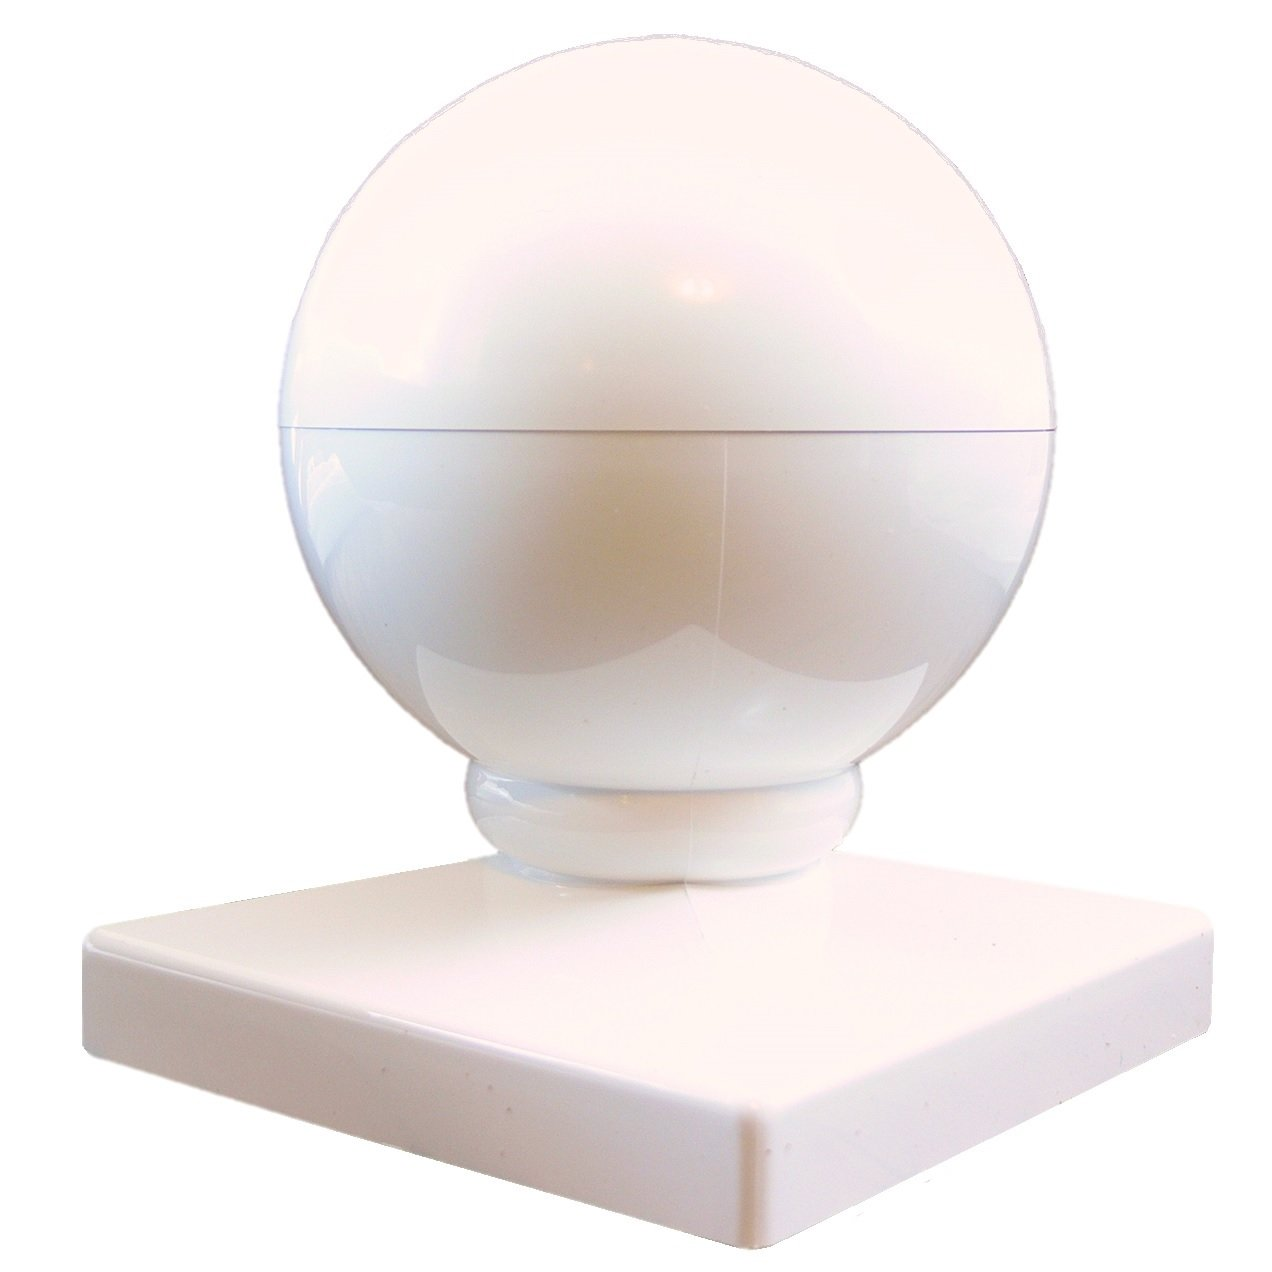 """Vinyl Fence POST CAP: 5"""" BALL CAP (5 Inch) Dome Style ~ White Vinyl Fence Parts ~ Fits over a 5x5 vinyl fence post (sleeve style post). Vinyl fence material is PVC and will not rot or fade."""